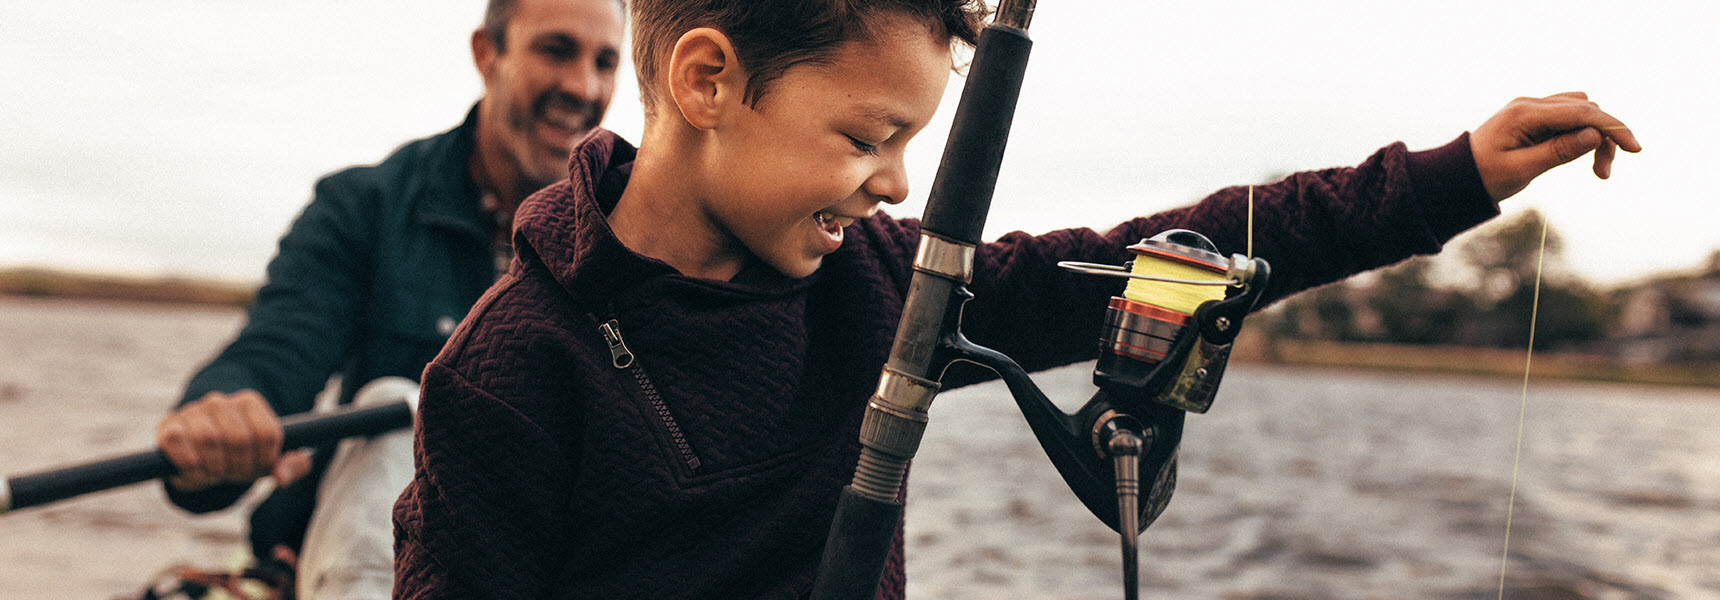 Father considers how a will and an estate plan might help care for the people he cares about as he kayaks with young son.